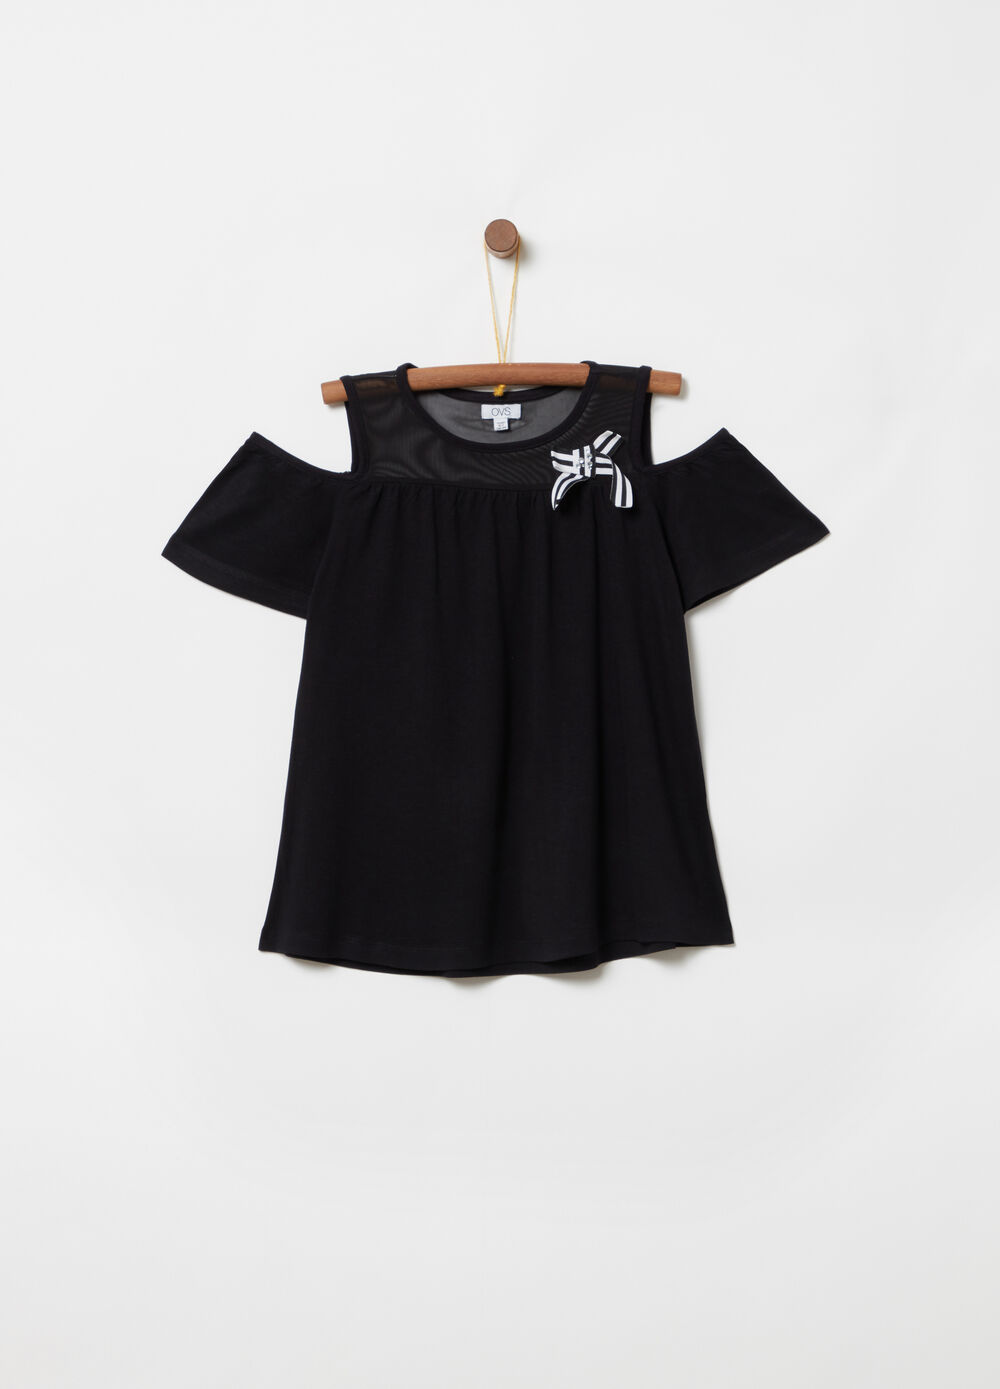 Strapless T-shirt and bow with diamantés